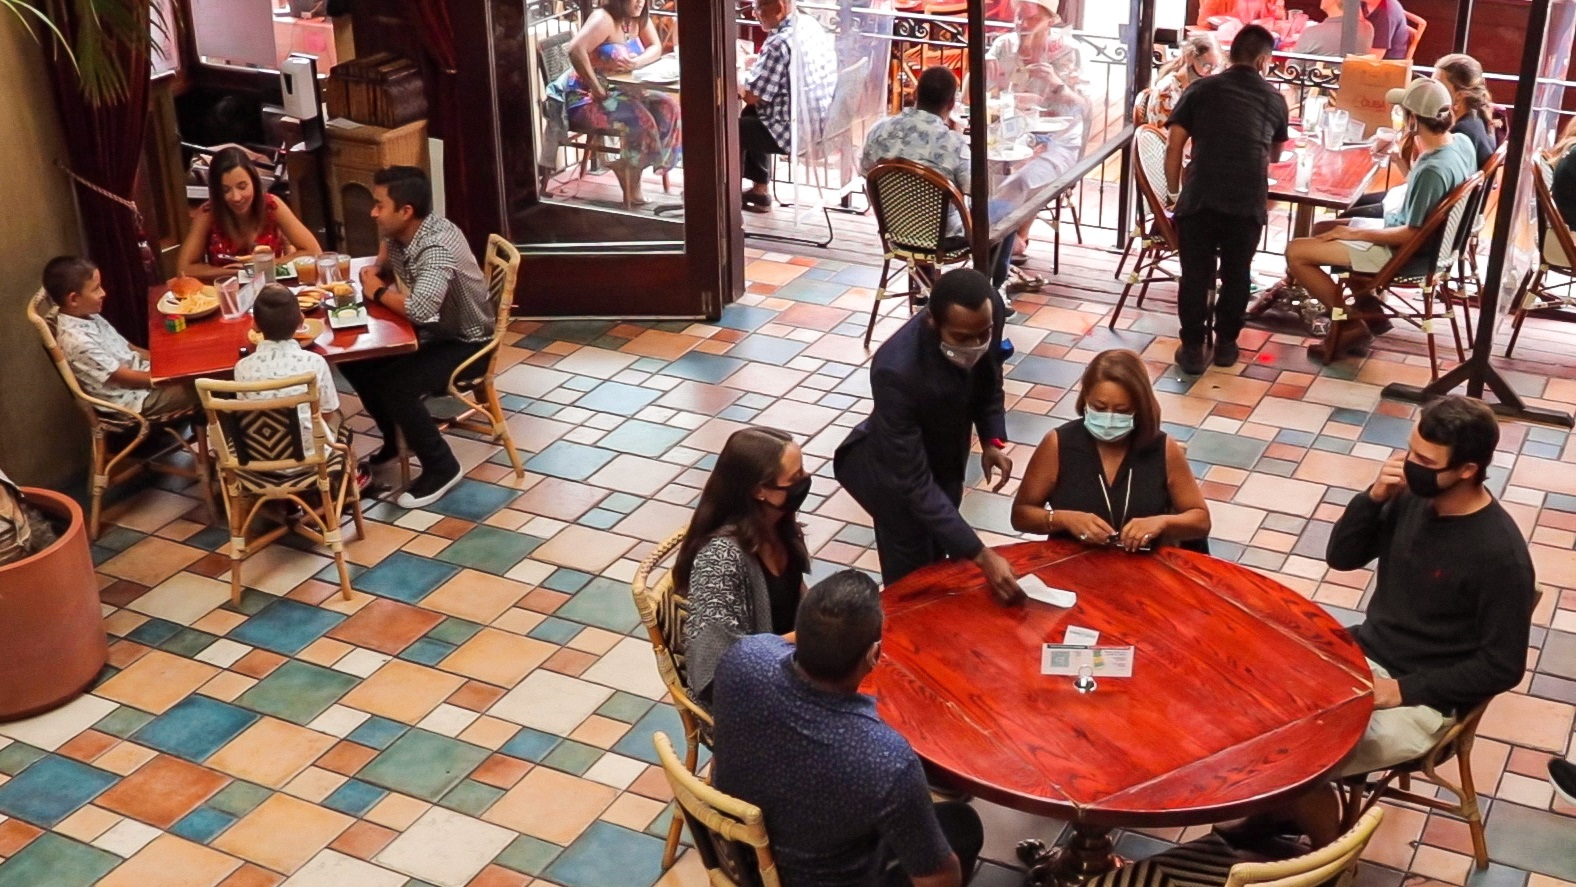 interior of restaurant with colorful tile floor, tables spaced apart, and diners and servers wearing pandemic face masks, with a view of tables outside